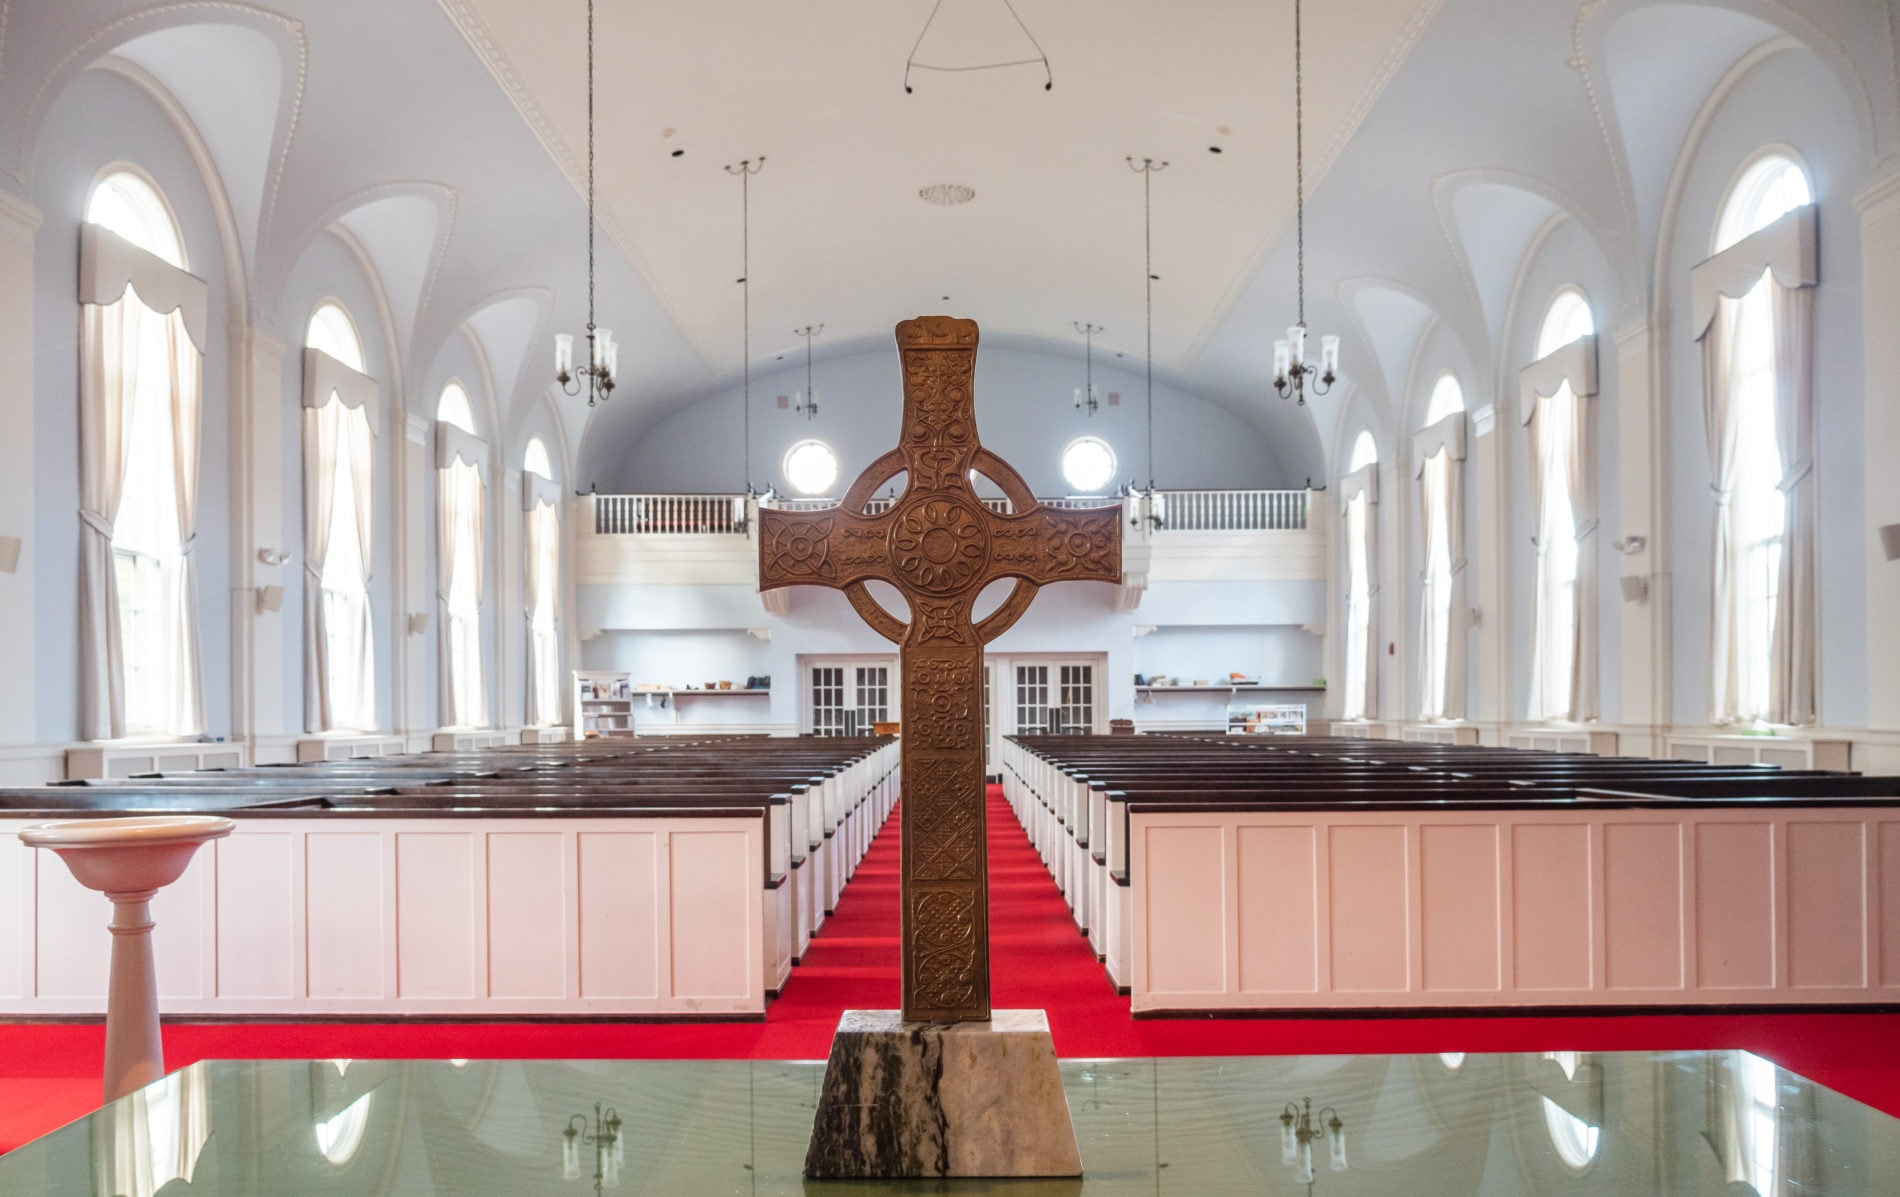 the cross on the communion table with the sanctuary behind